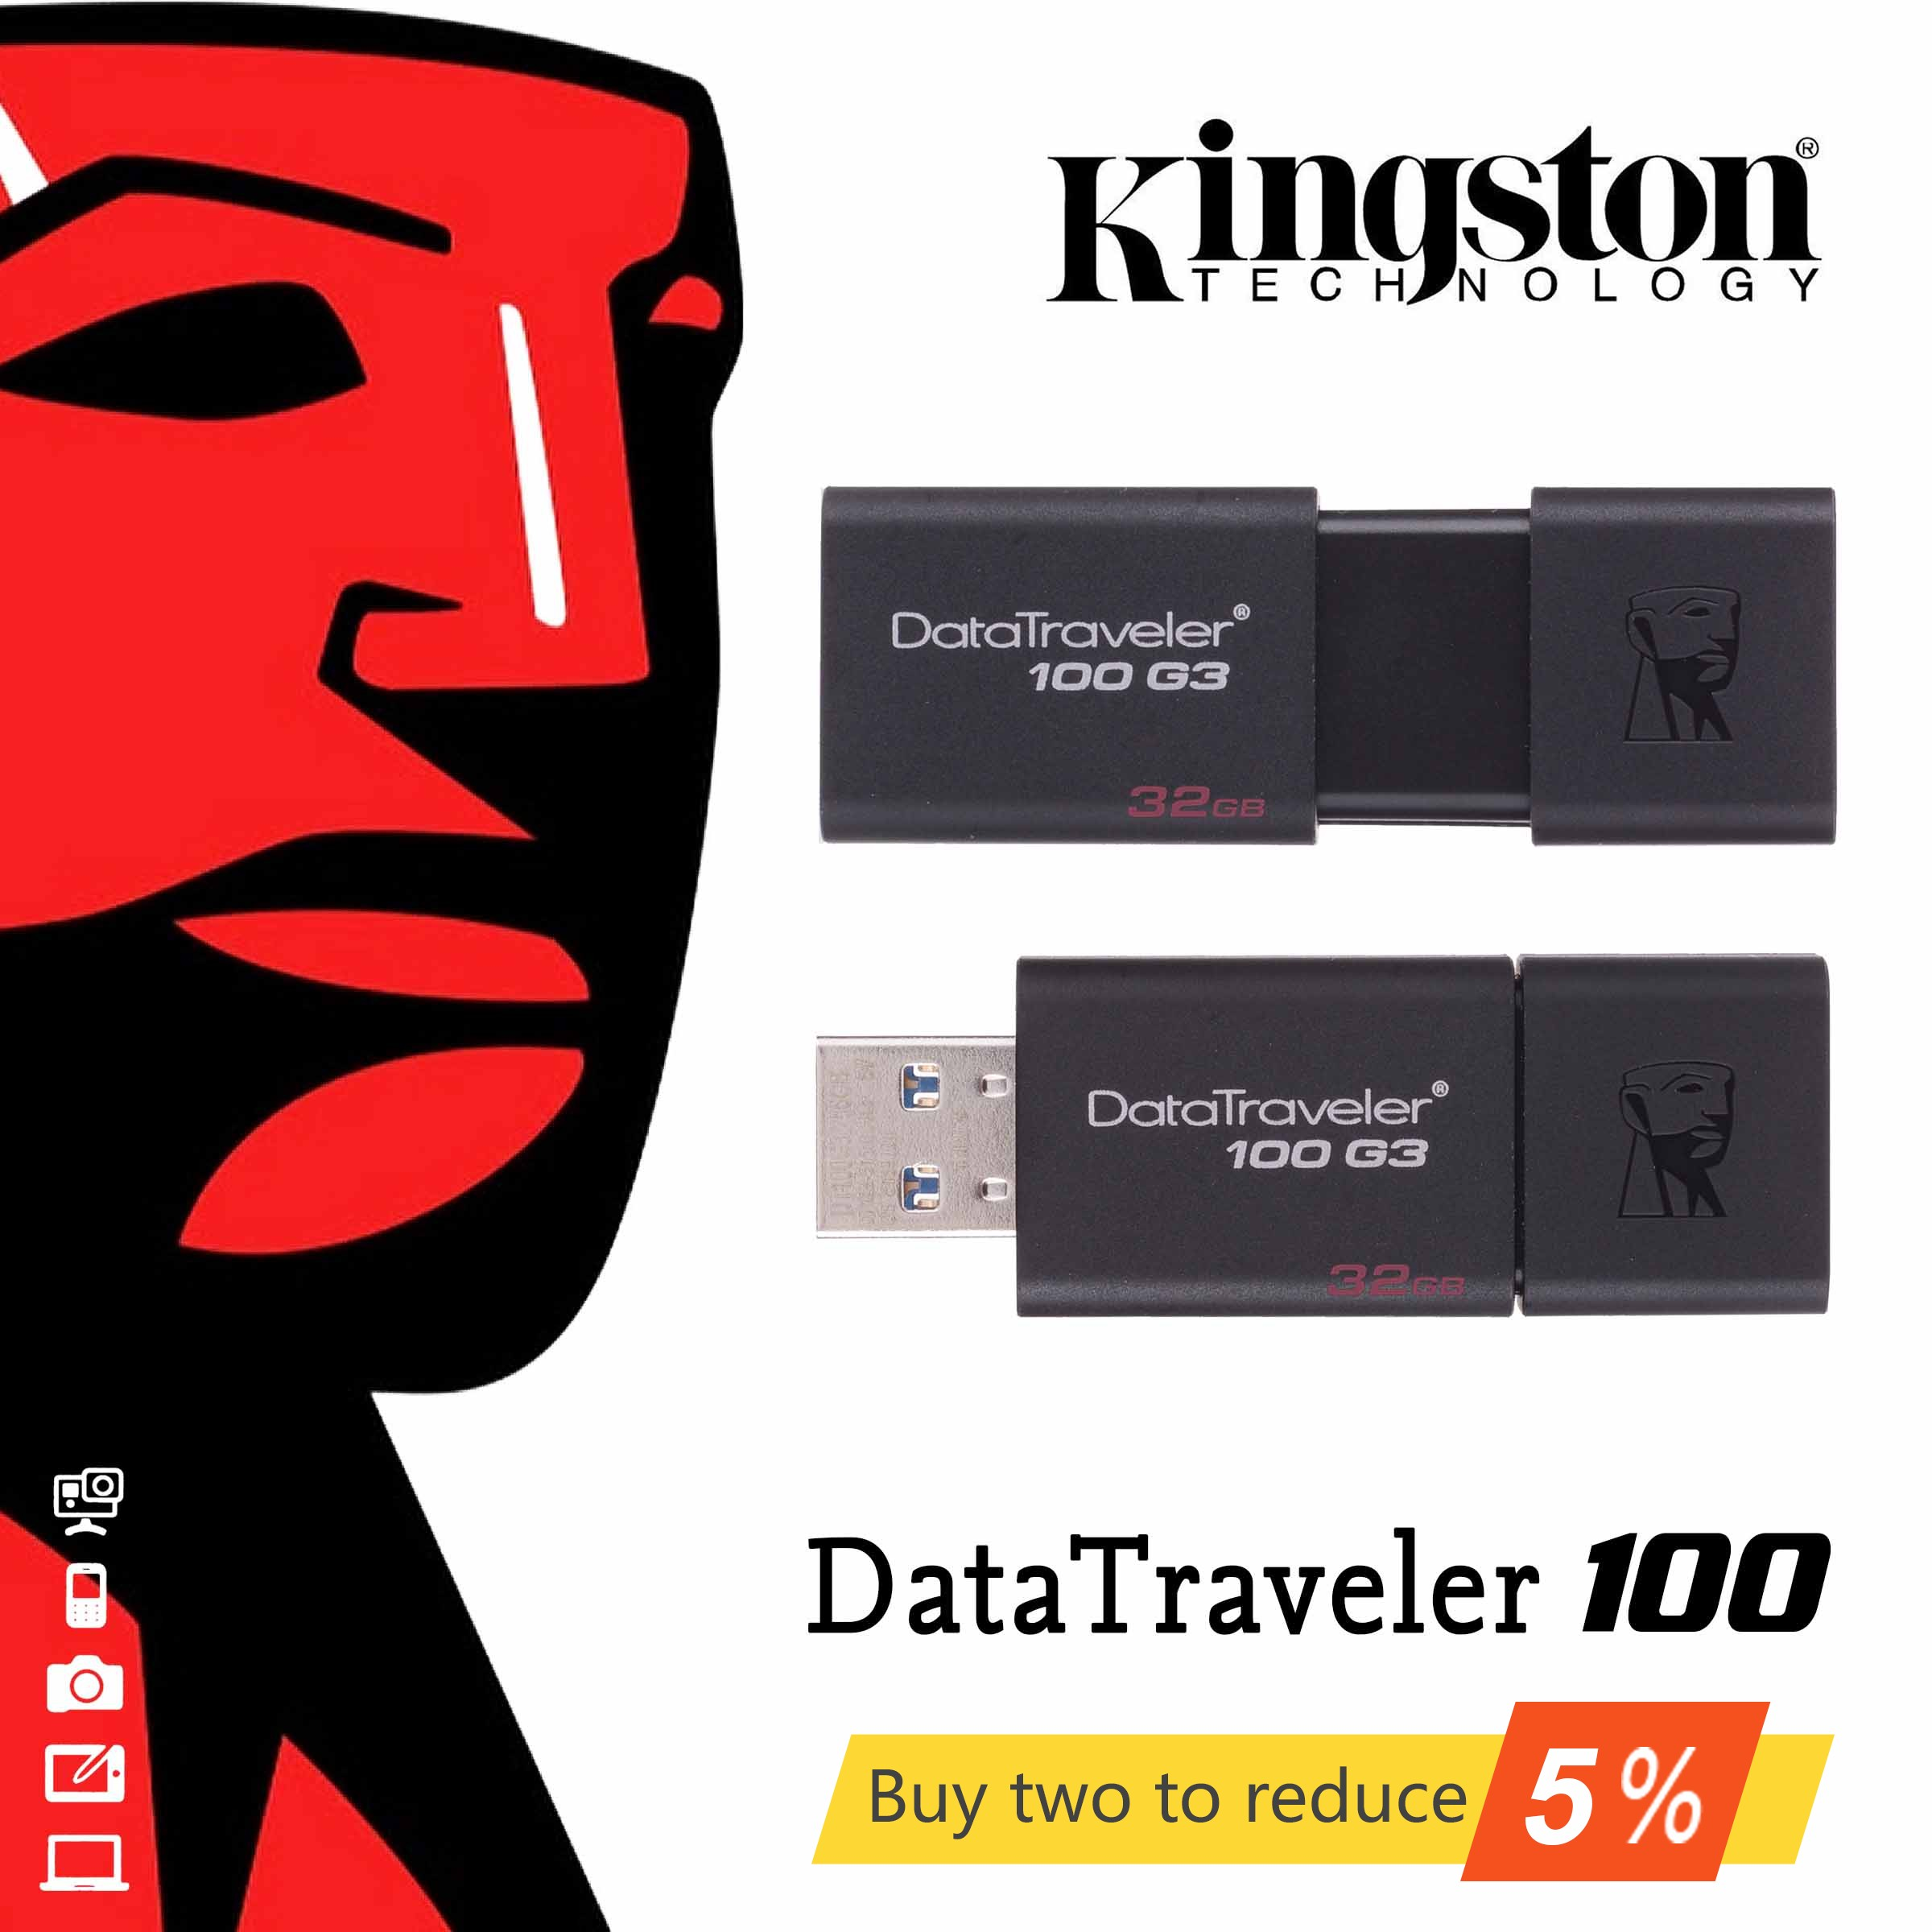 Original <font><b>Kingston</b></font> DataTraveler 100 G3 USB 3.0 USB Flash <font><b>Drive</b></font> 32 GB 64 GB 128 GB USB <font><b>Pen</b></font> <font><b>Drive</b></font> U Disk 32 64 128 GB DT100G3 Stick image